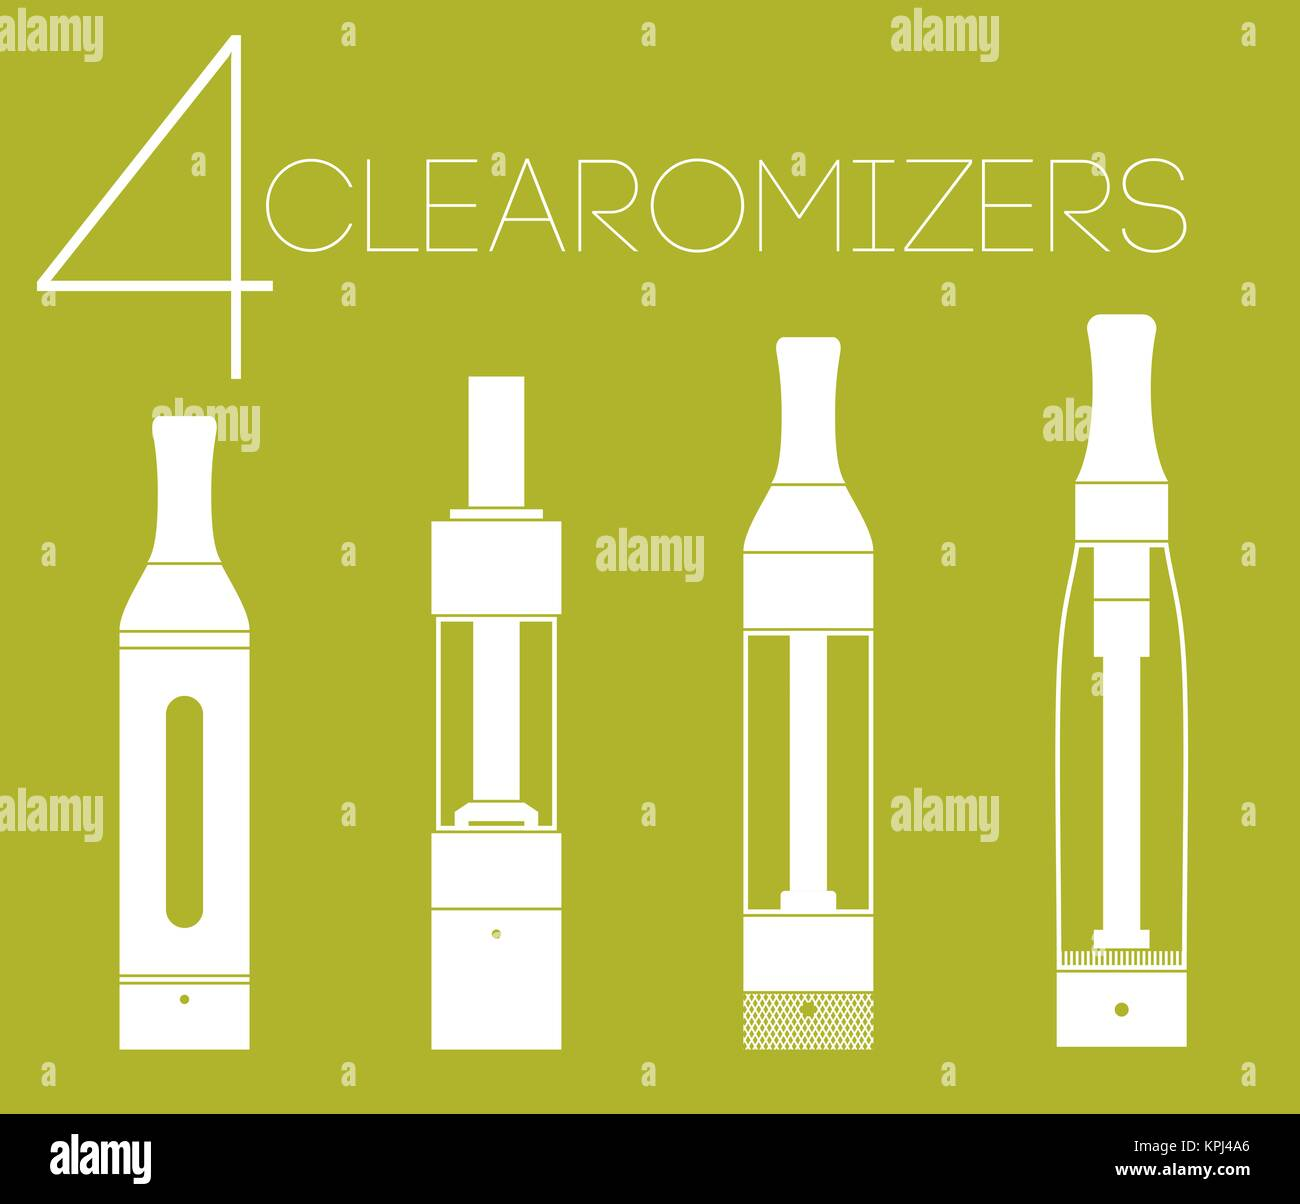 4 clearomizers set - Stock Image